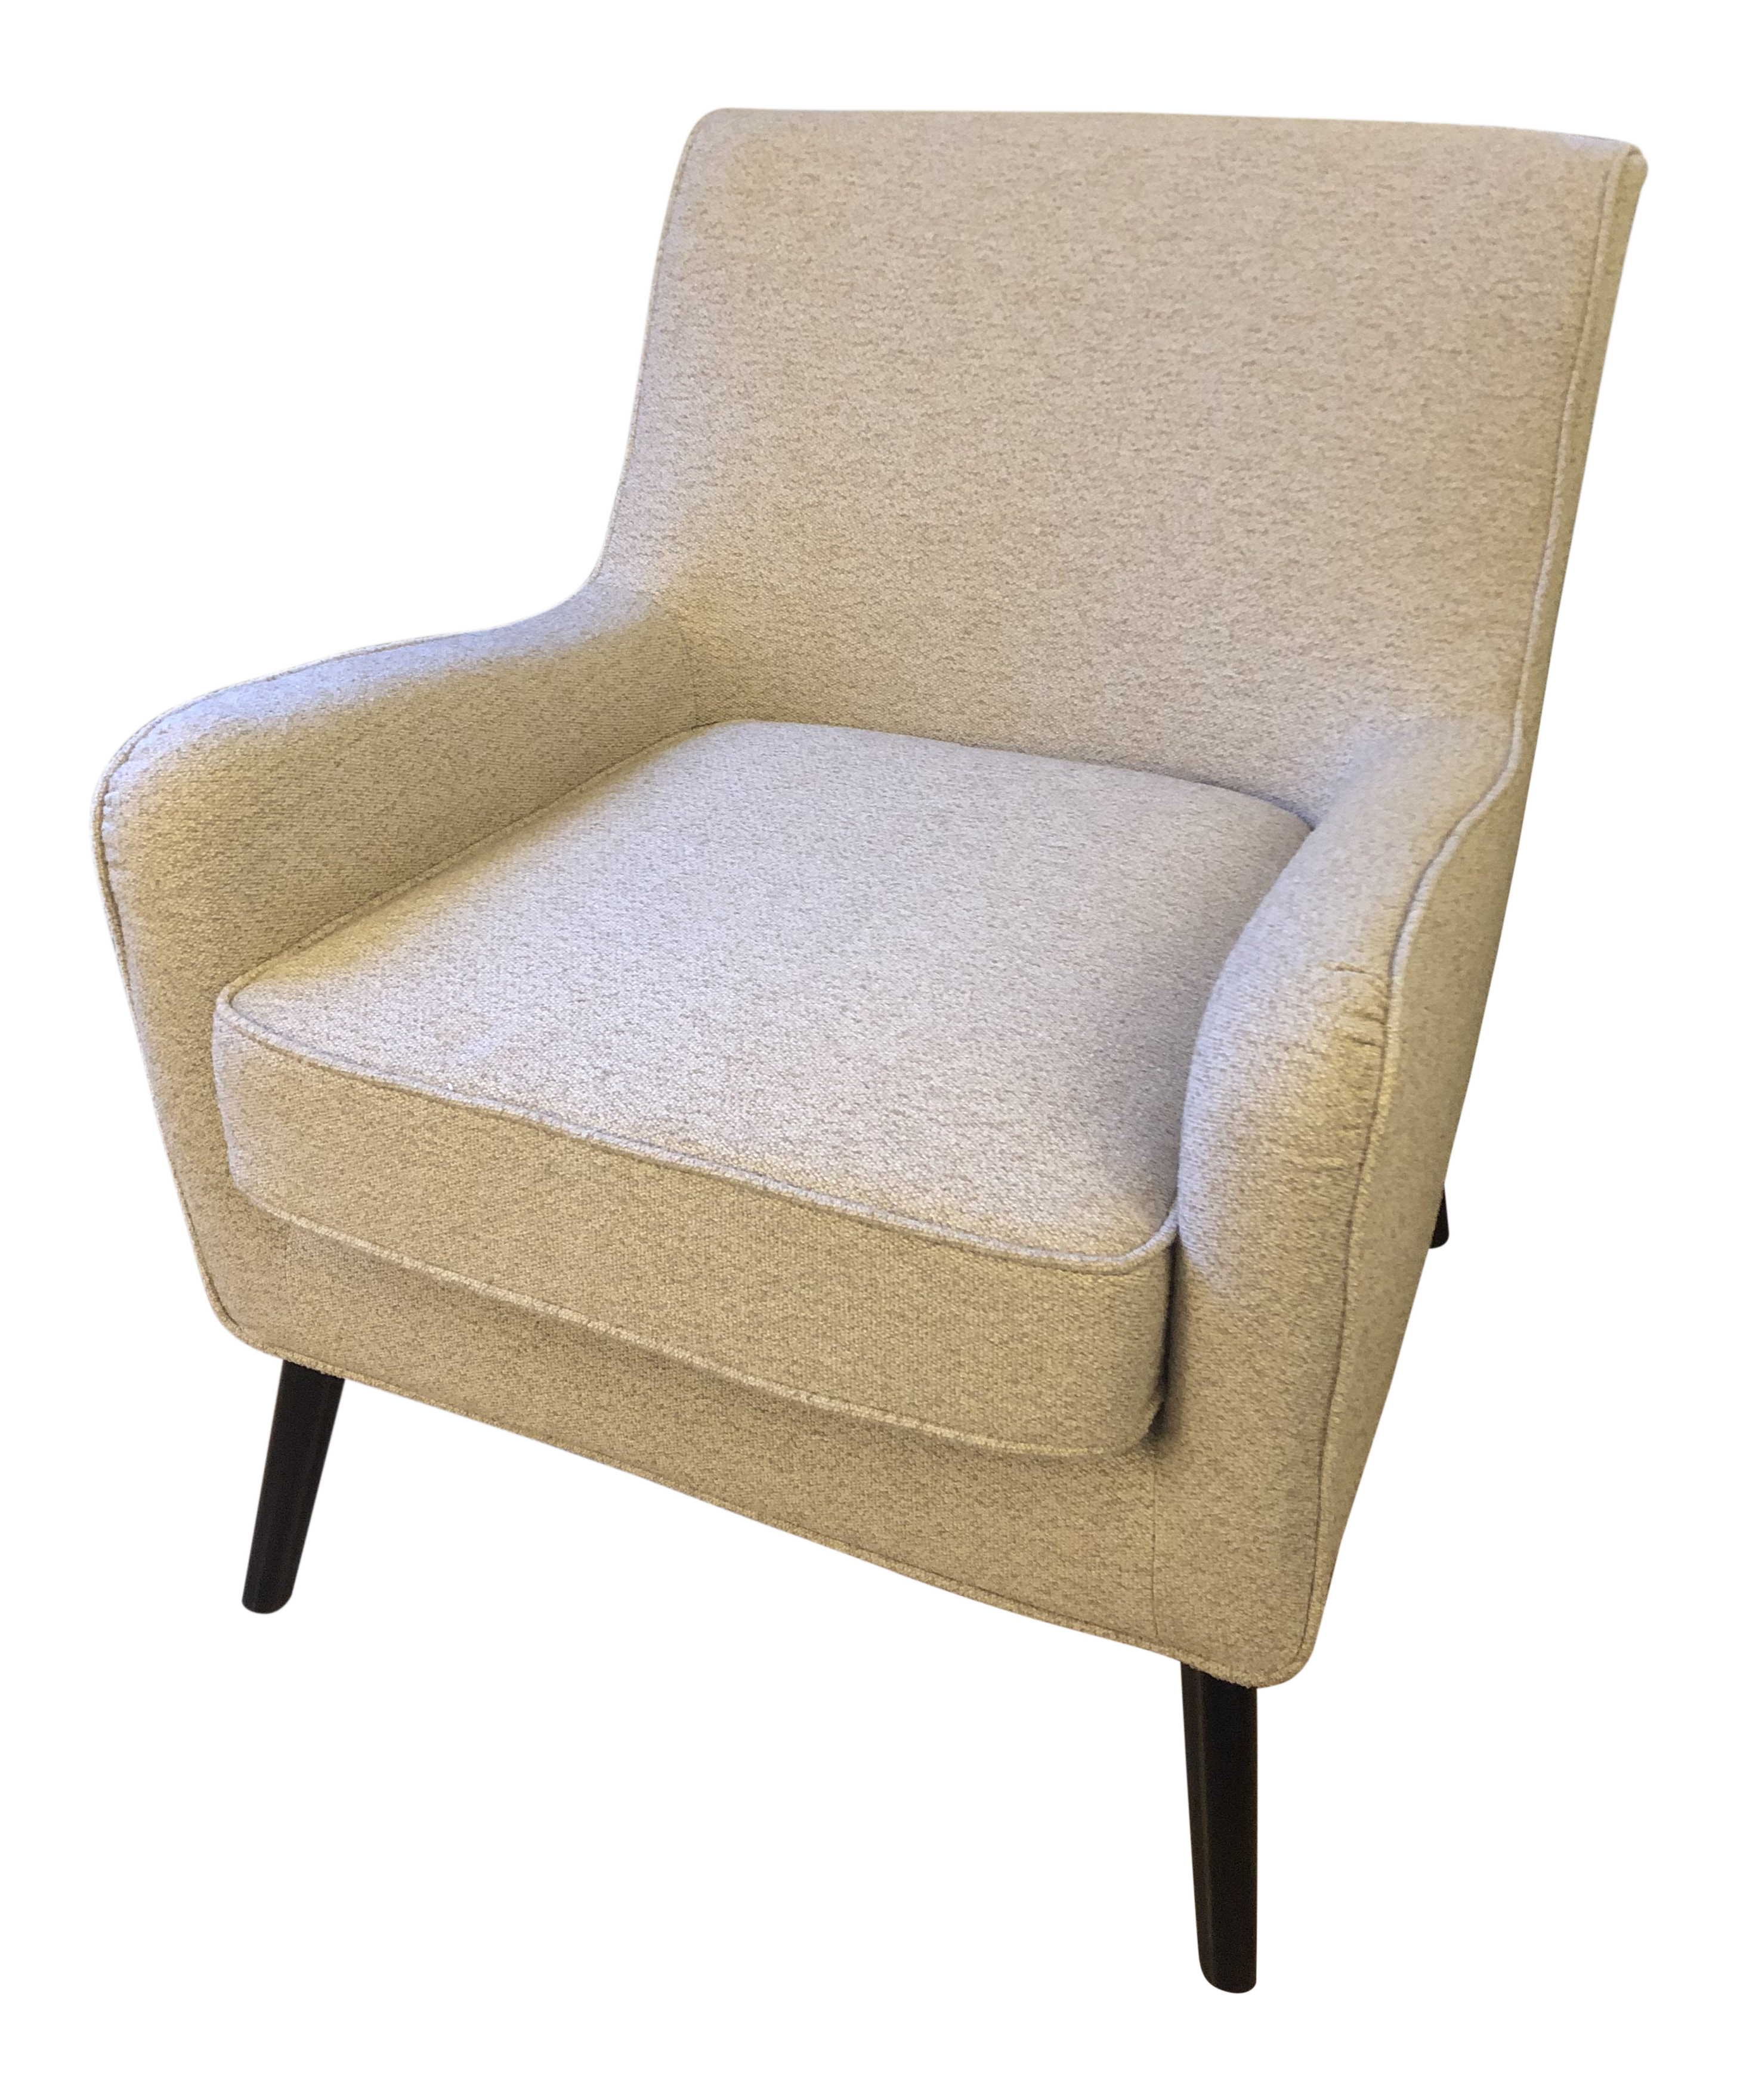 Remarkable West Elm Book Nook Armchair Caraccident5 Cool Chair Designs And Ideas Caraccident5Info